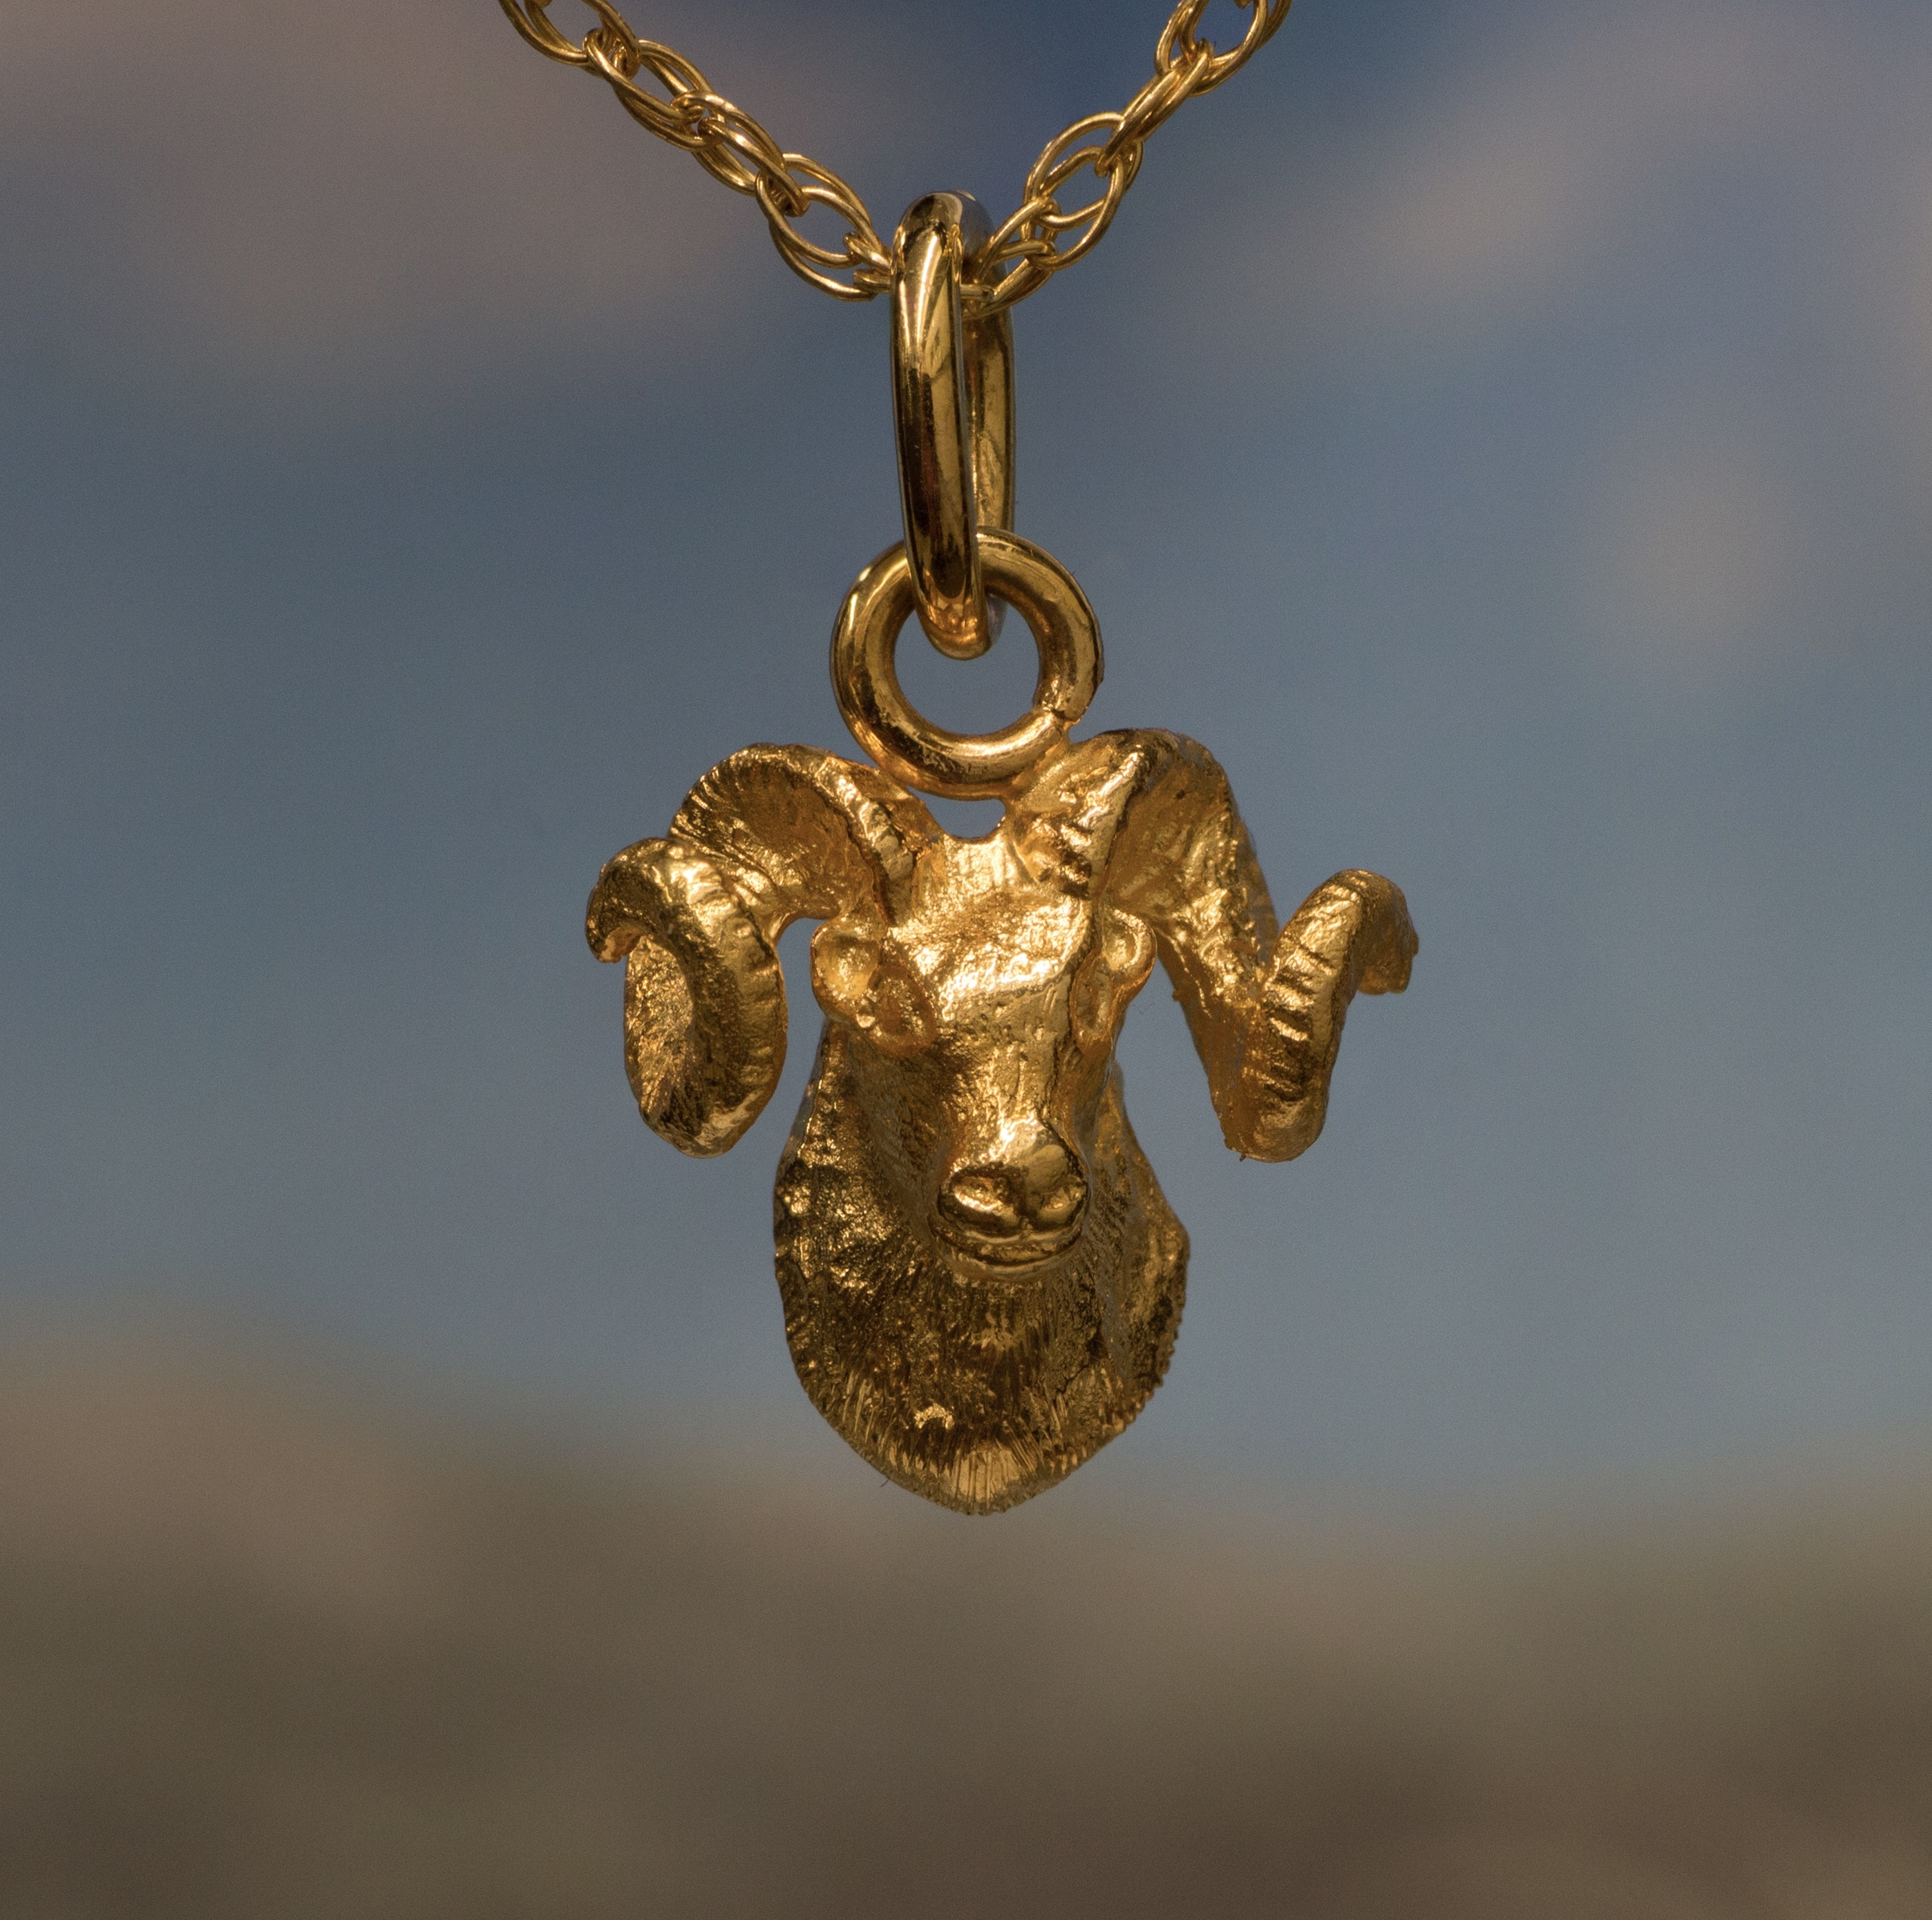 Alaskan Dall Sheep Crafted in 14kt Yellow Gold.